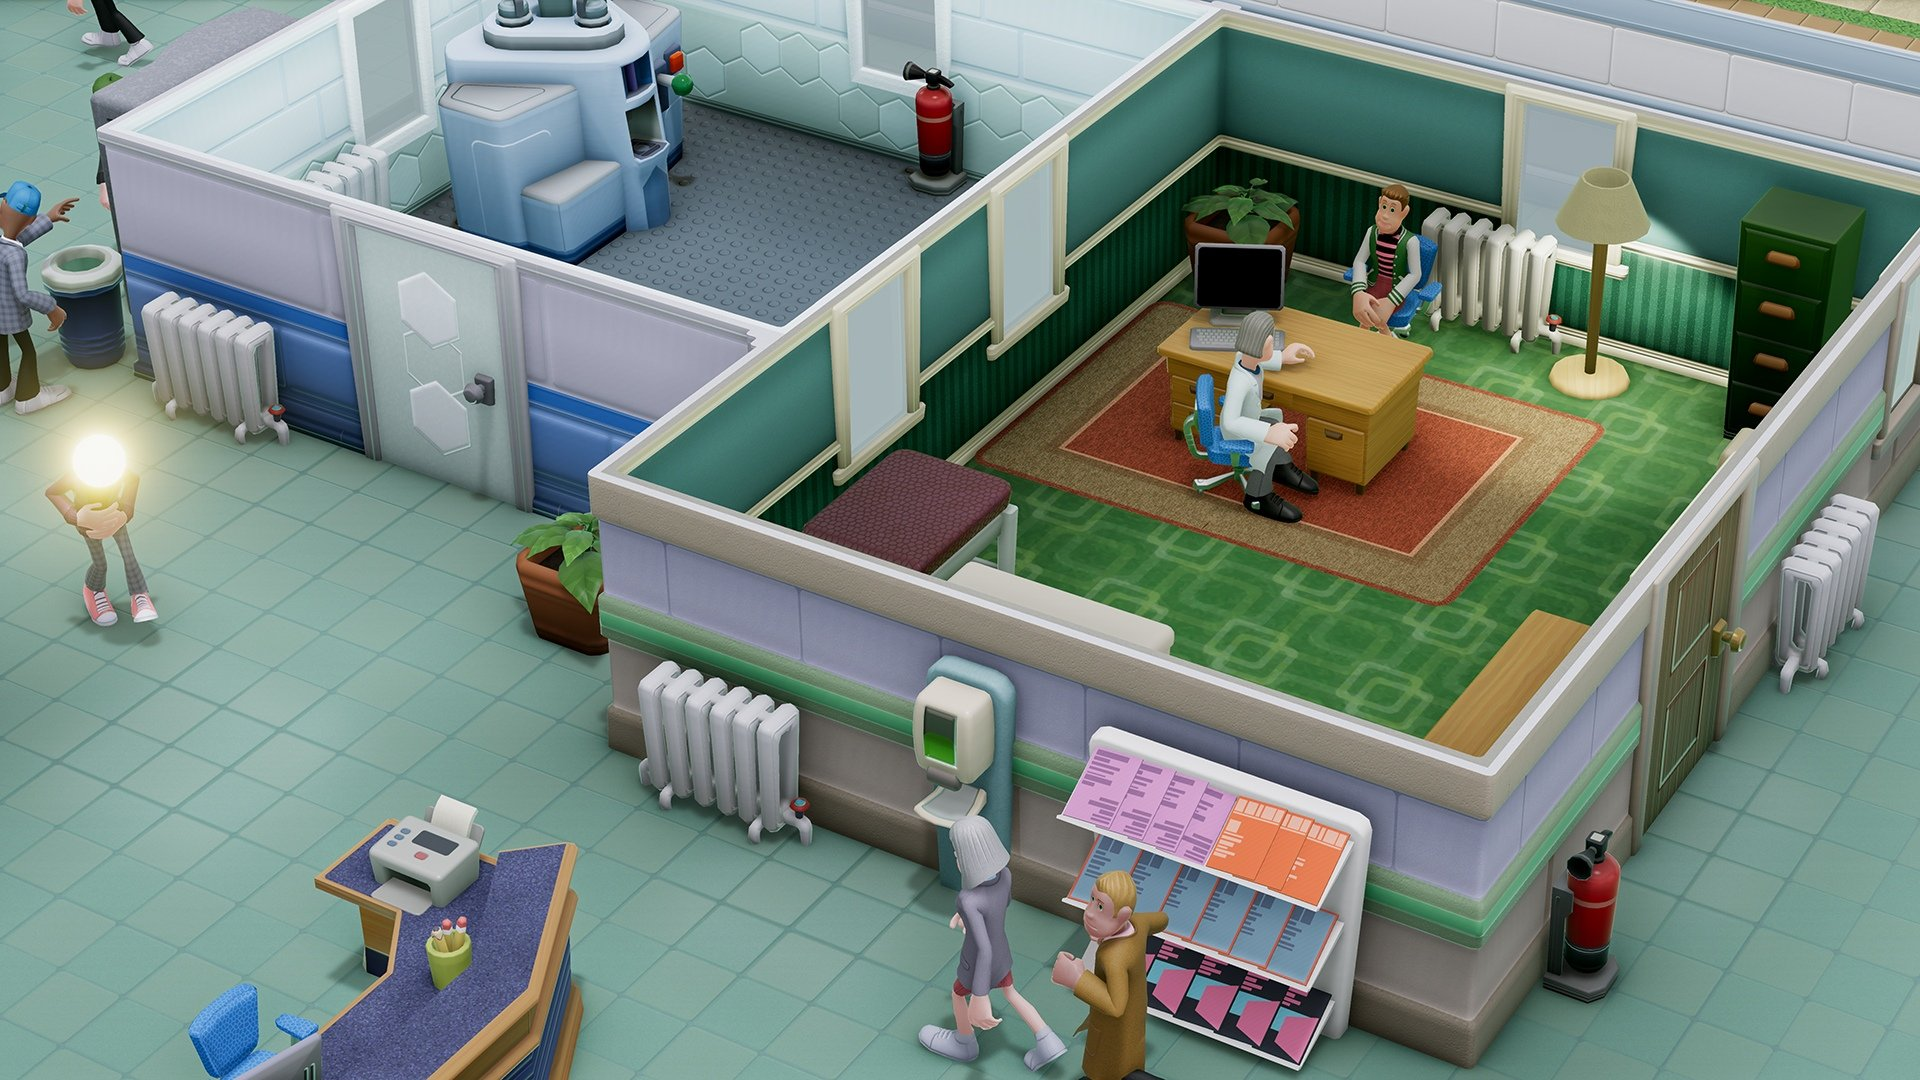 two_point_hospital-3928458.jpg